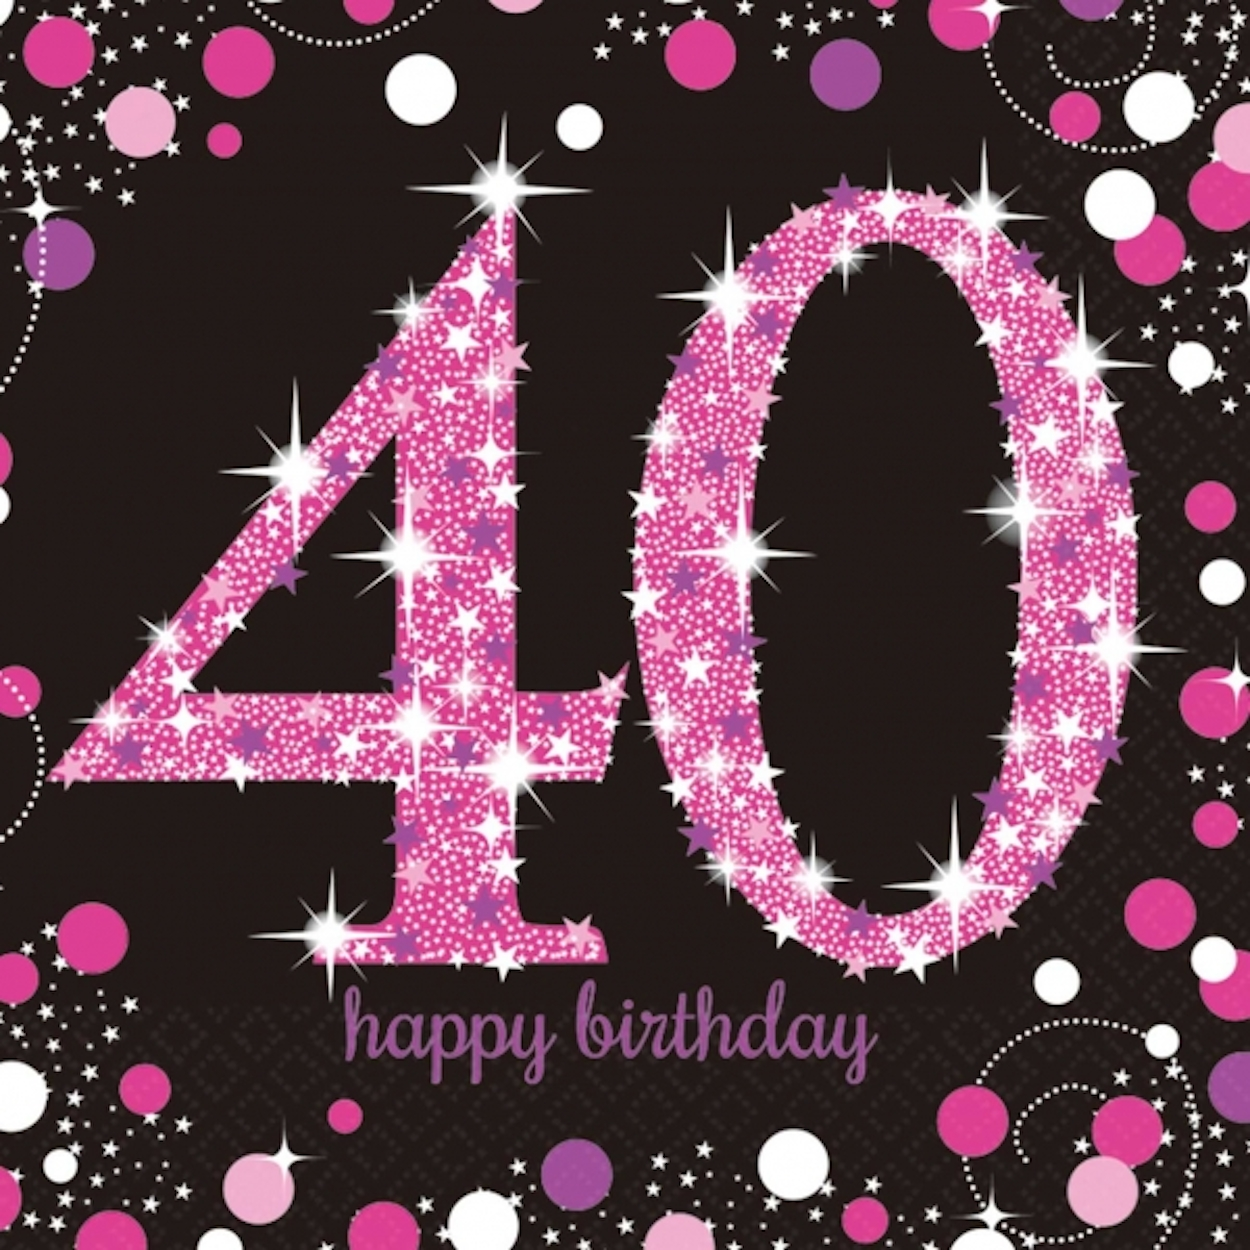 16 x Pink Celebration Age 40 Napkins Pink & Black 40th ... Pictures Of Baby Horses